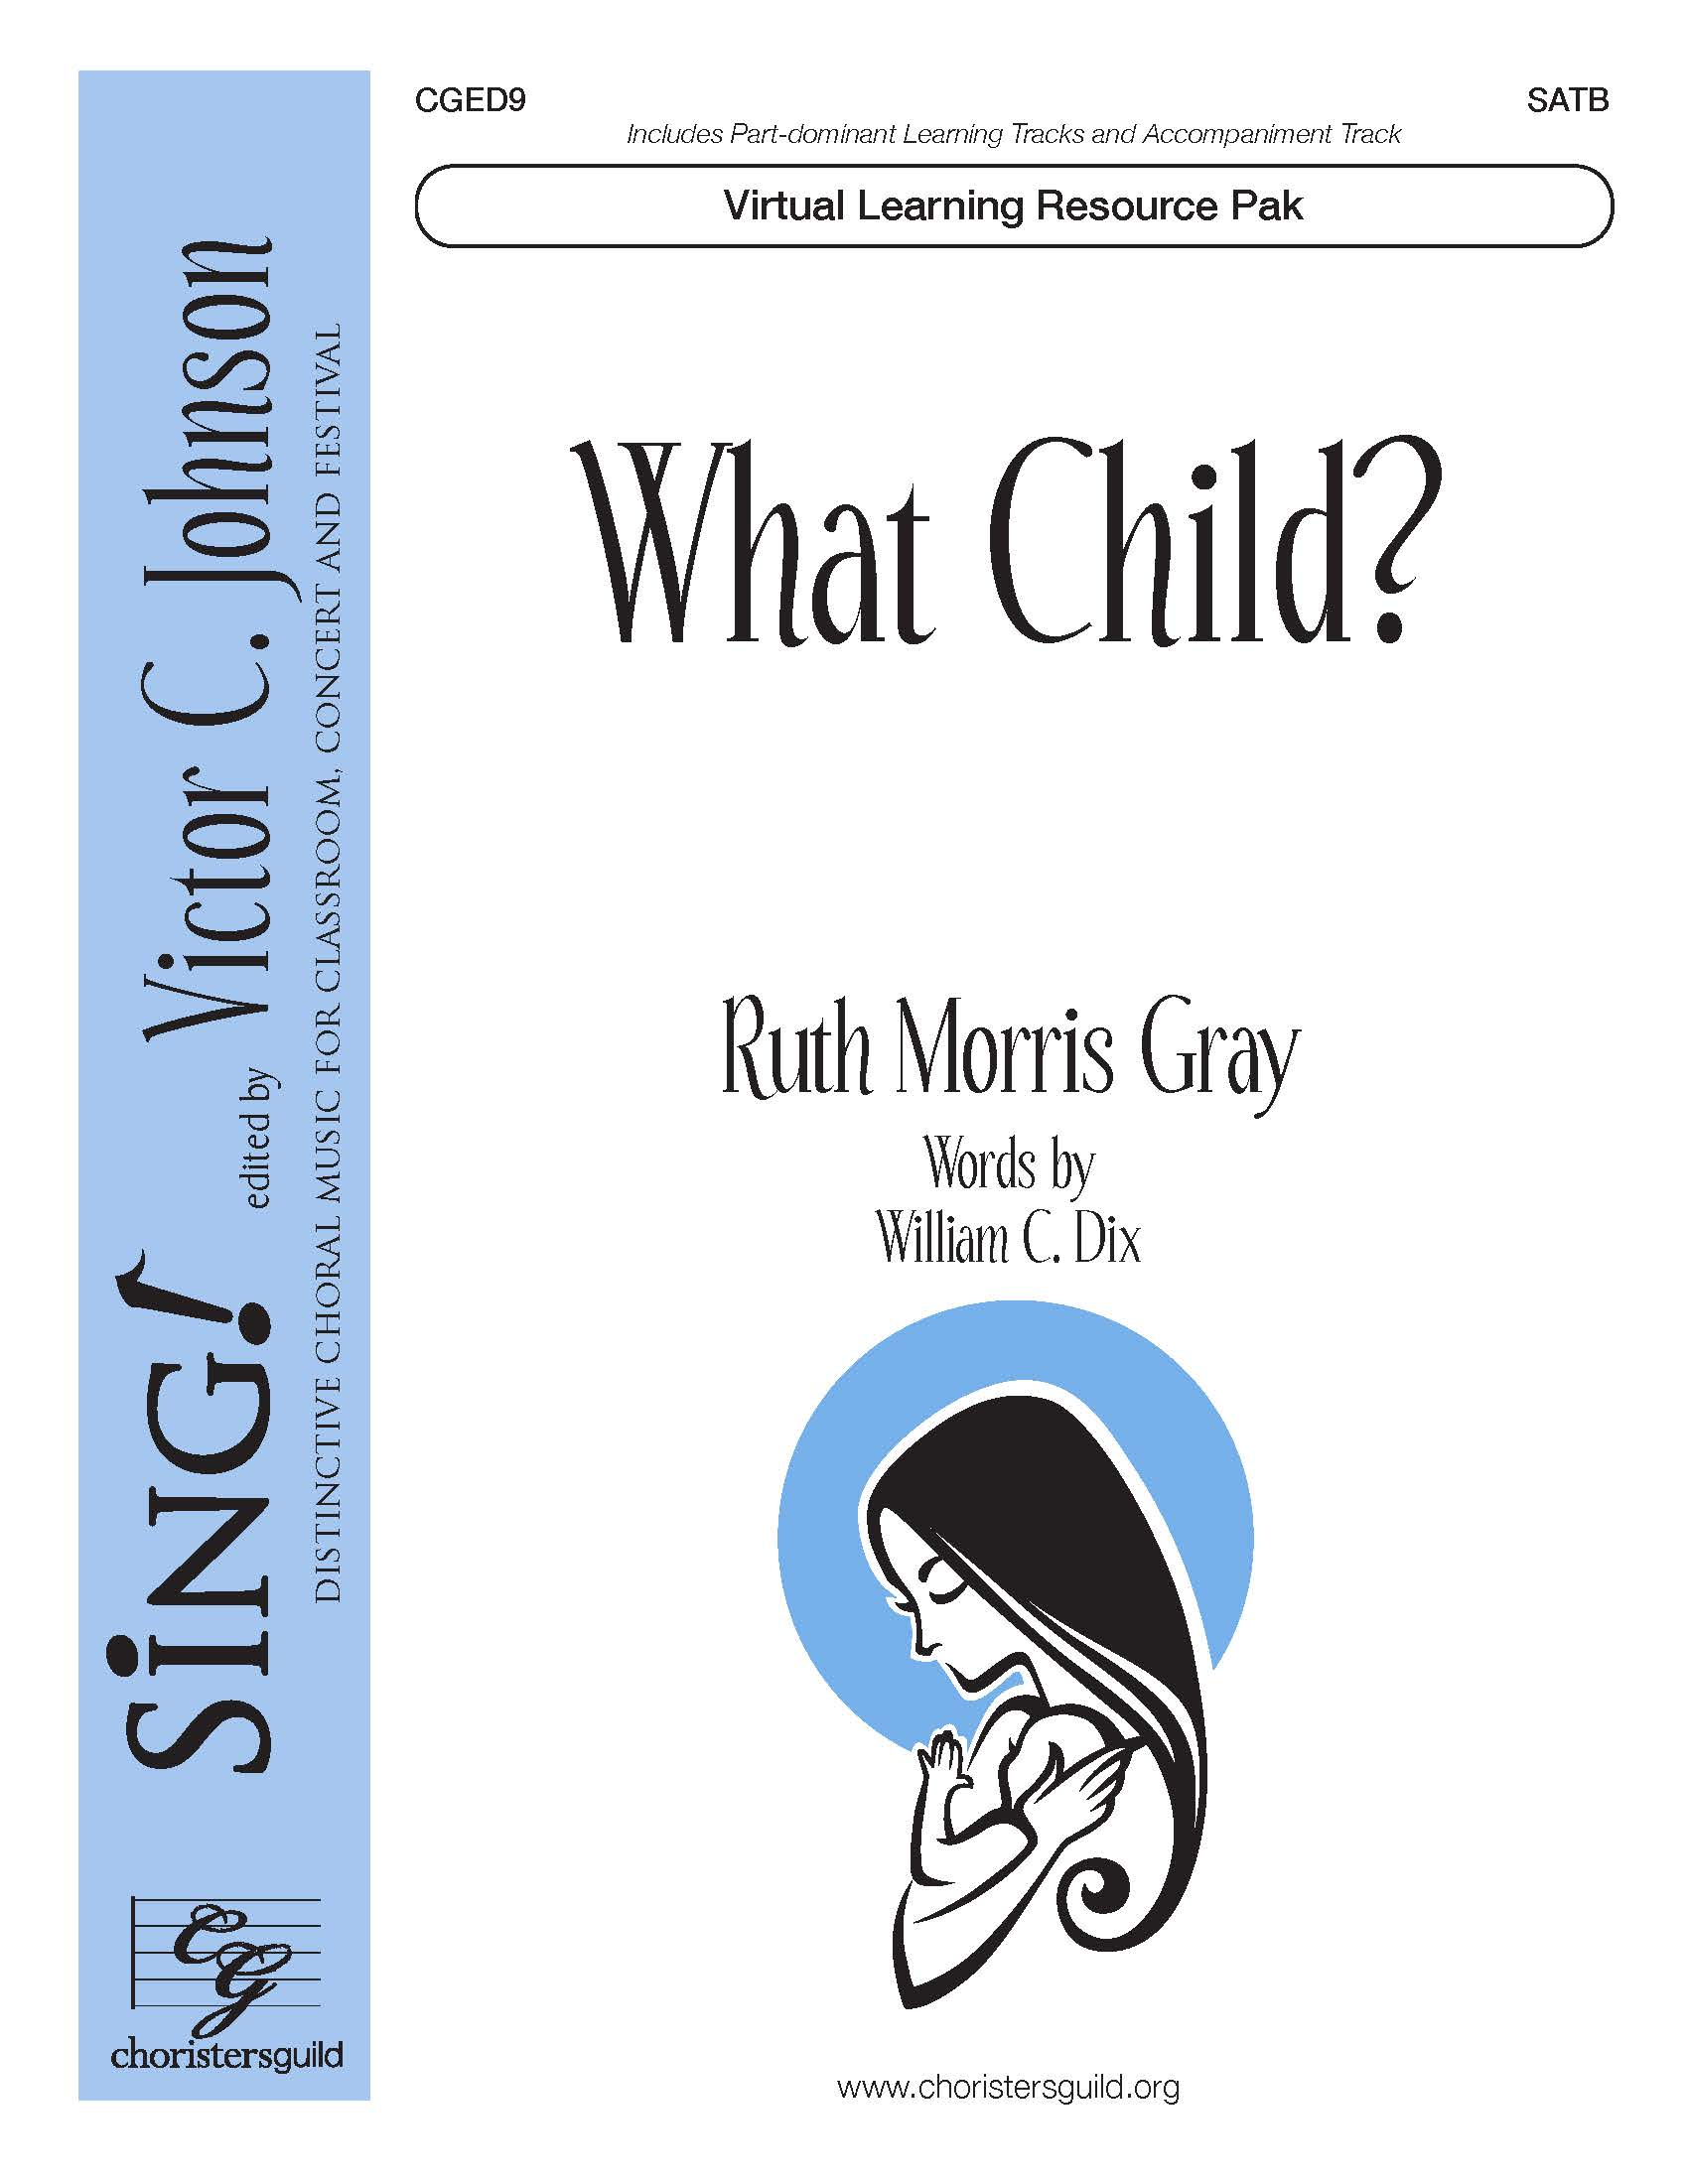 What Child? (Virtual Learning Resource Pak) - SATB